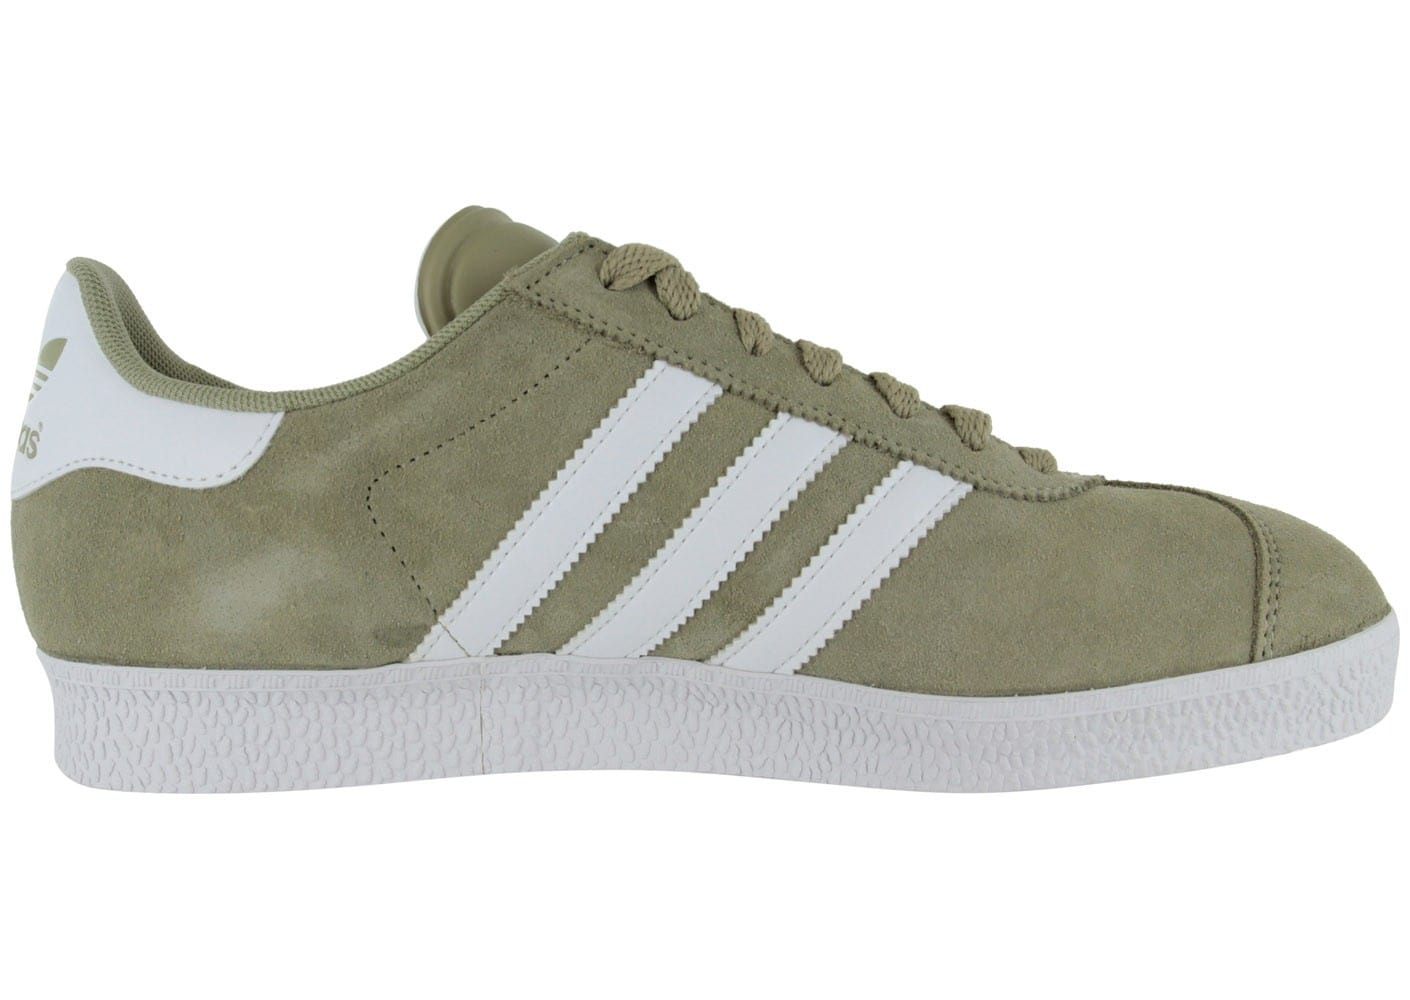 adidas gazelle femme kaki allow project.eu